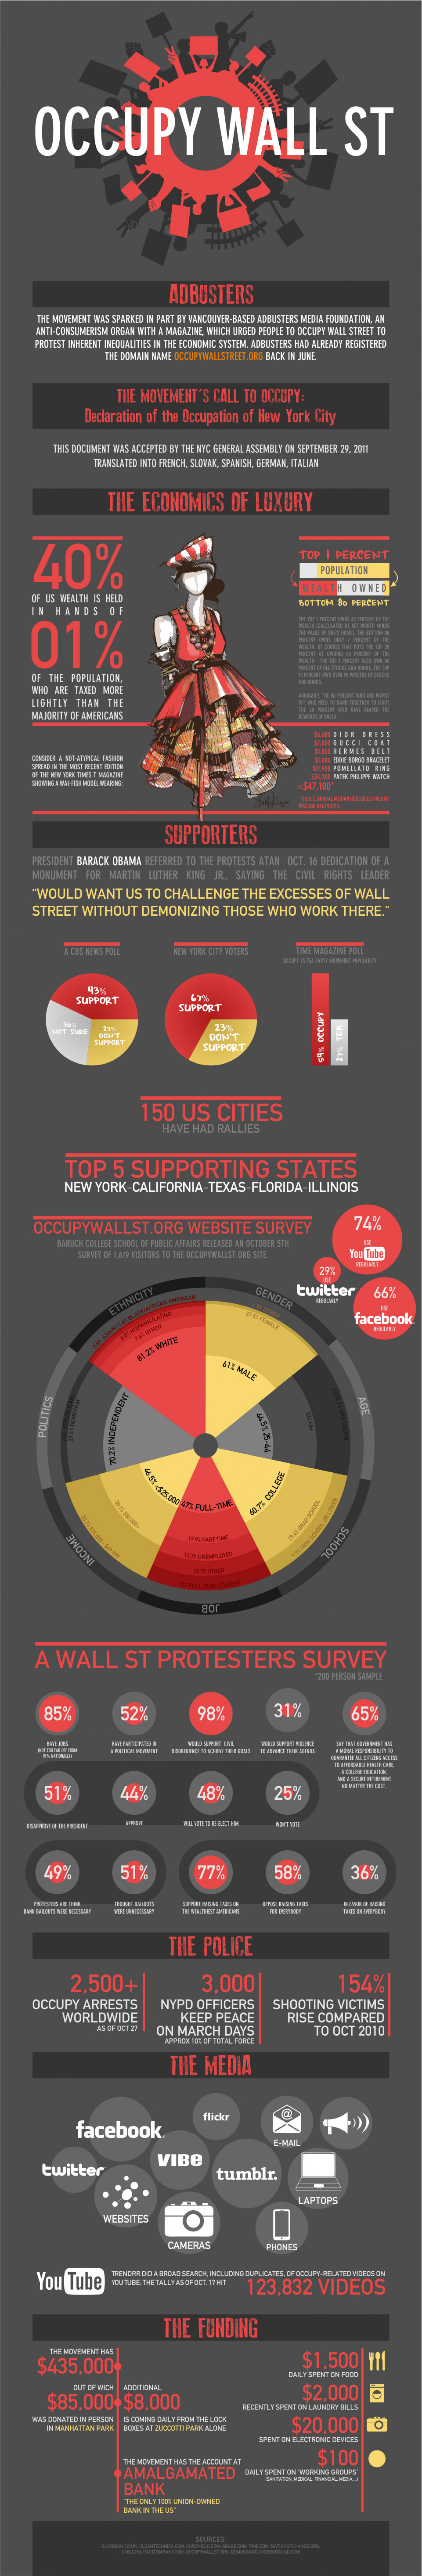 Occupy Wall Street Infographic